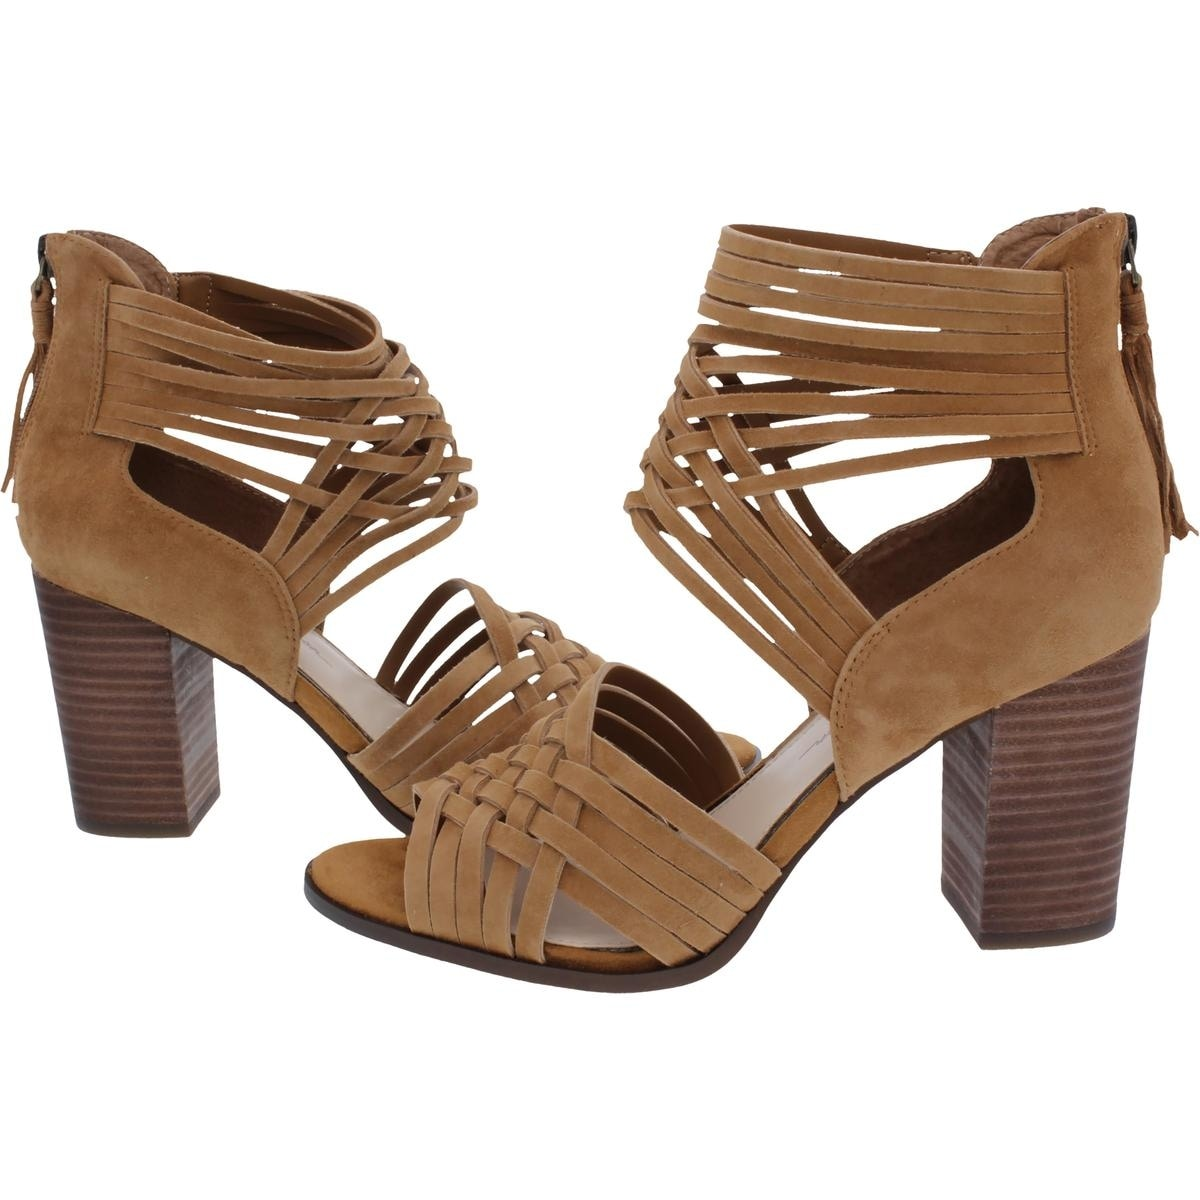 dc11513fe0b Shop Jessica Simpson Womens Reilynn Gladiator Sandals Woven Block Heel -  Free Shipping Today - Overstock - 21732422